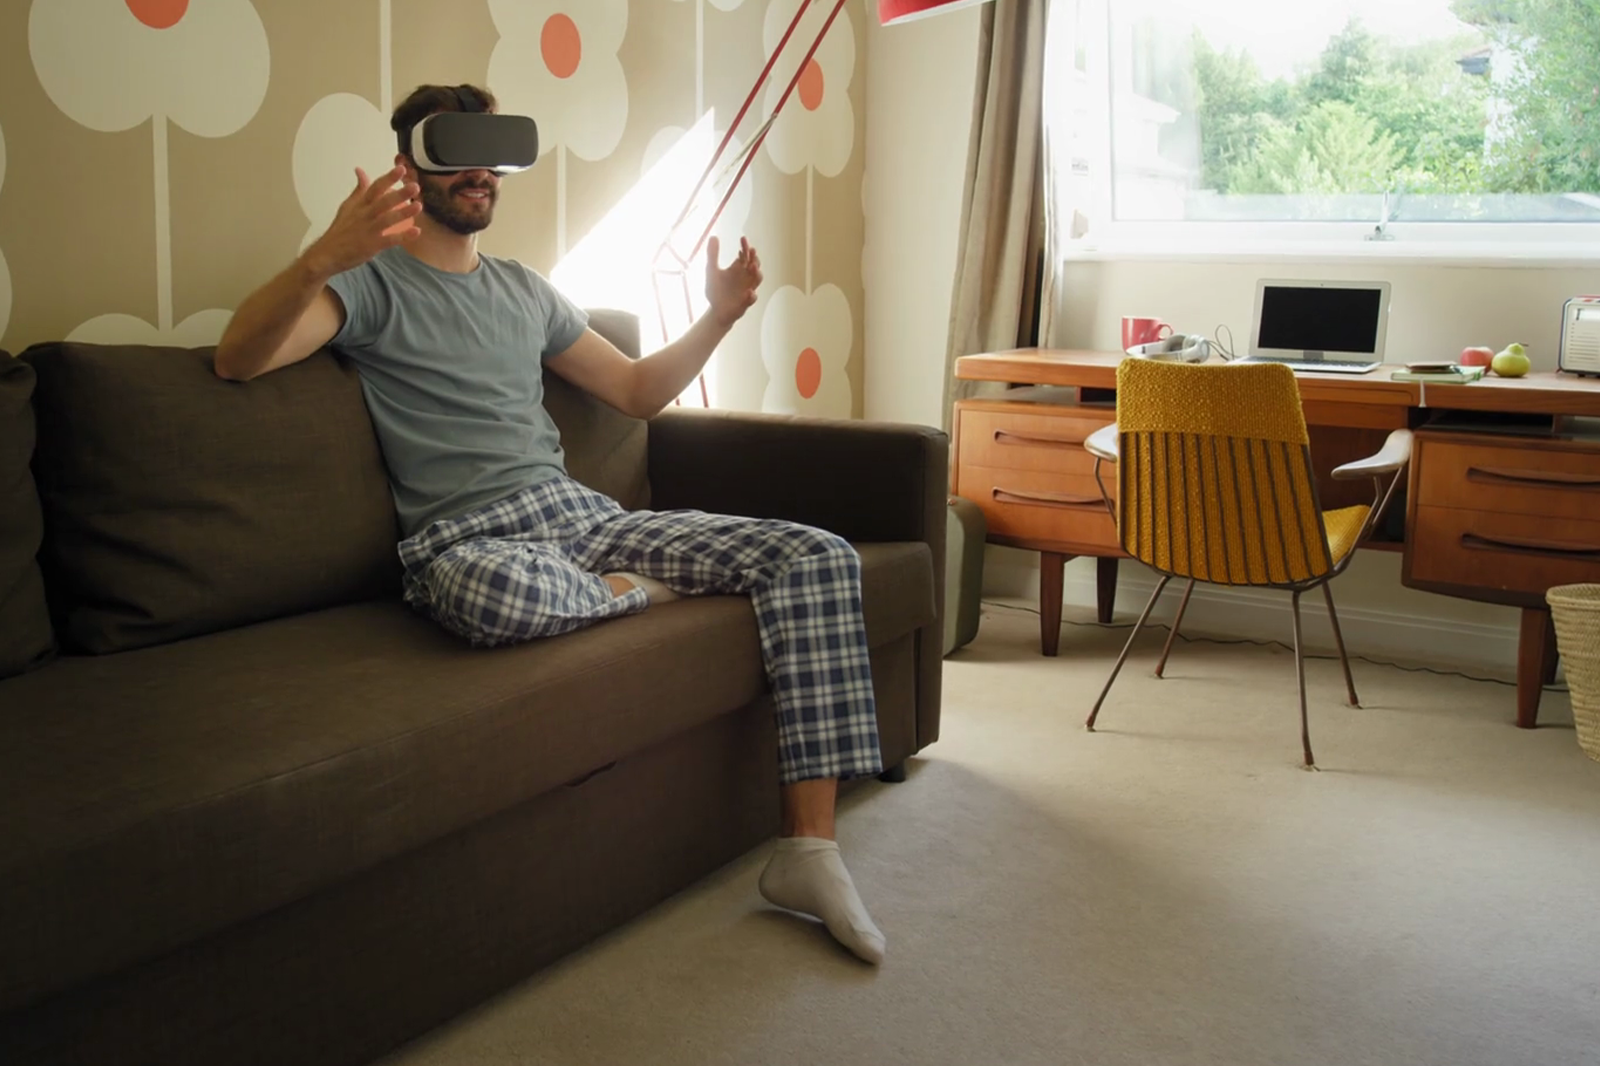 virtual reality glasses in-home use